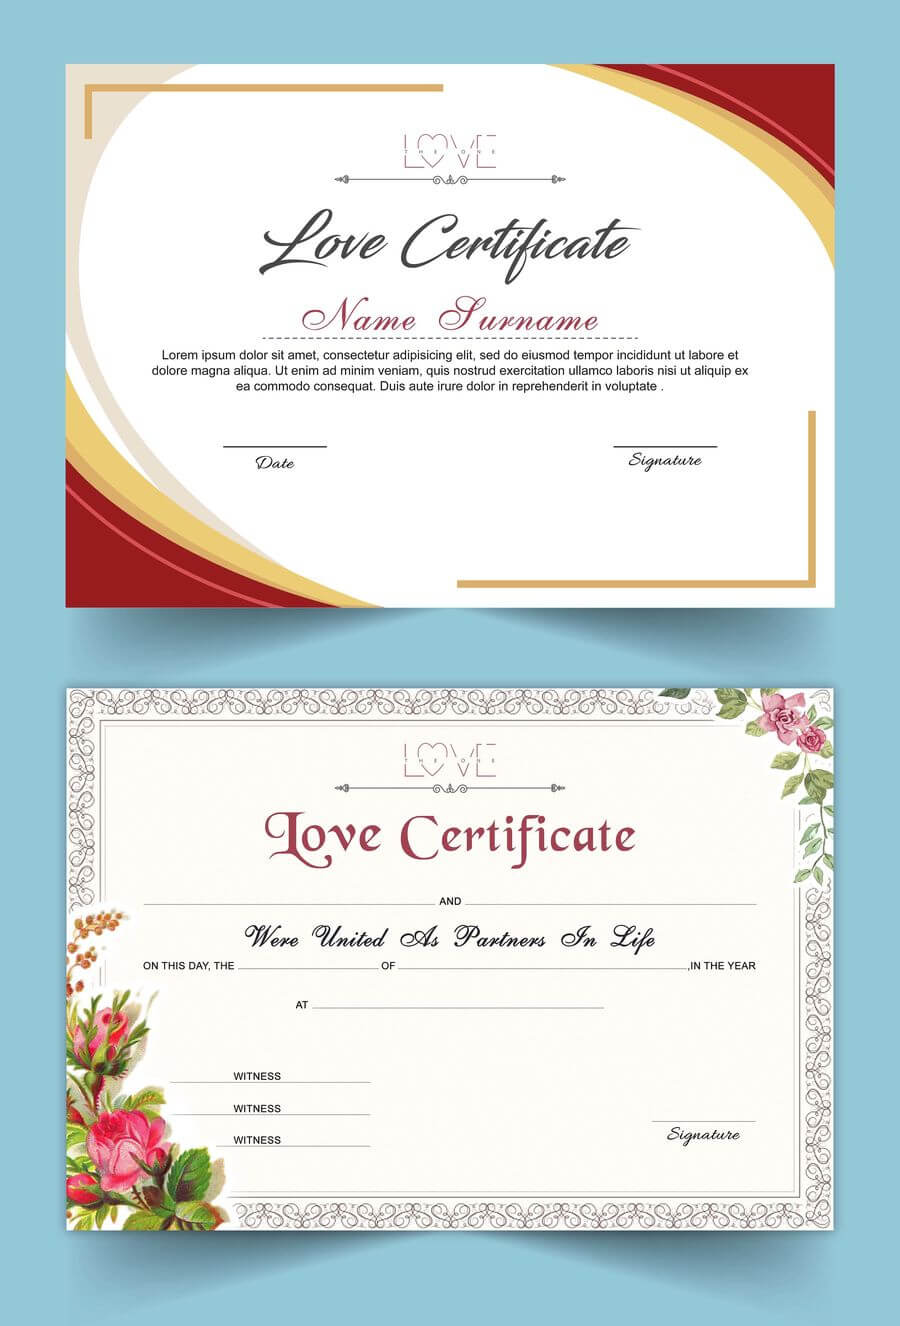 Entry #15Satishandsurabhi For Design A Love Certificate with Love Certificate Templates